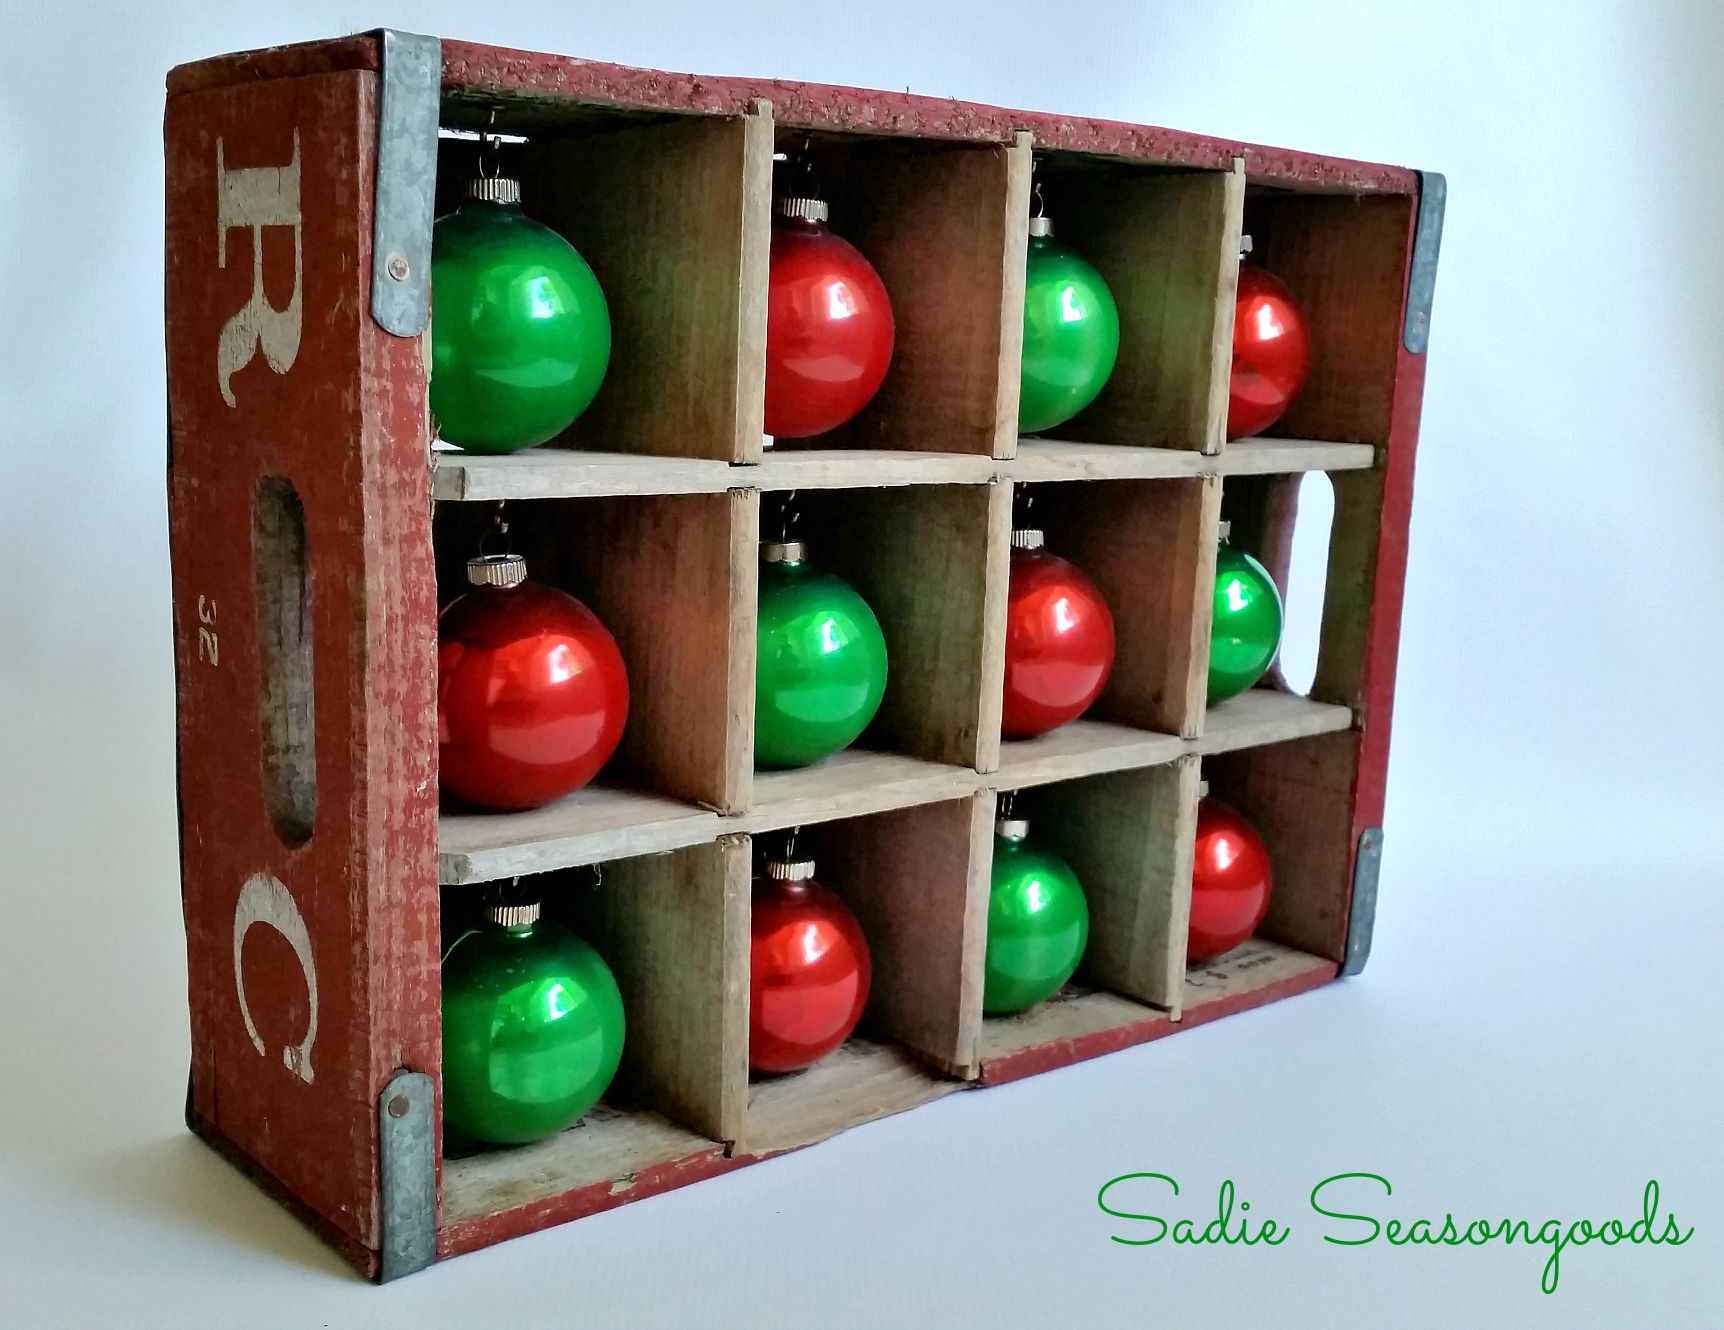 love using this antique 1970's RC Cola Crate to display my vintage Shiny Brite ornaments! Perfect for a tabletop or my mantel. The secret is that the holes in the crate are larger, perfect for standard-sized Christmas ornaments! #sadieseasongoods